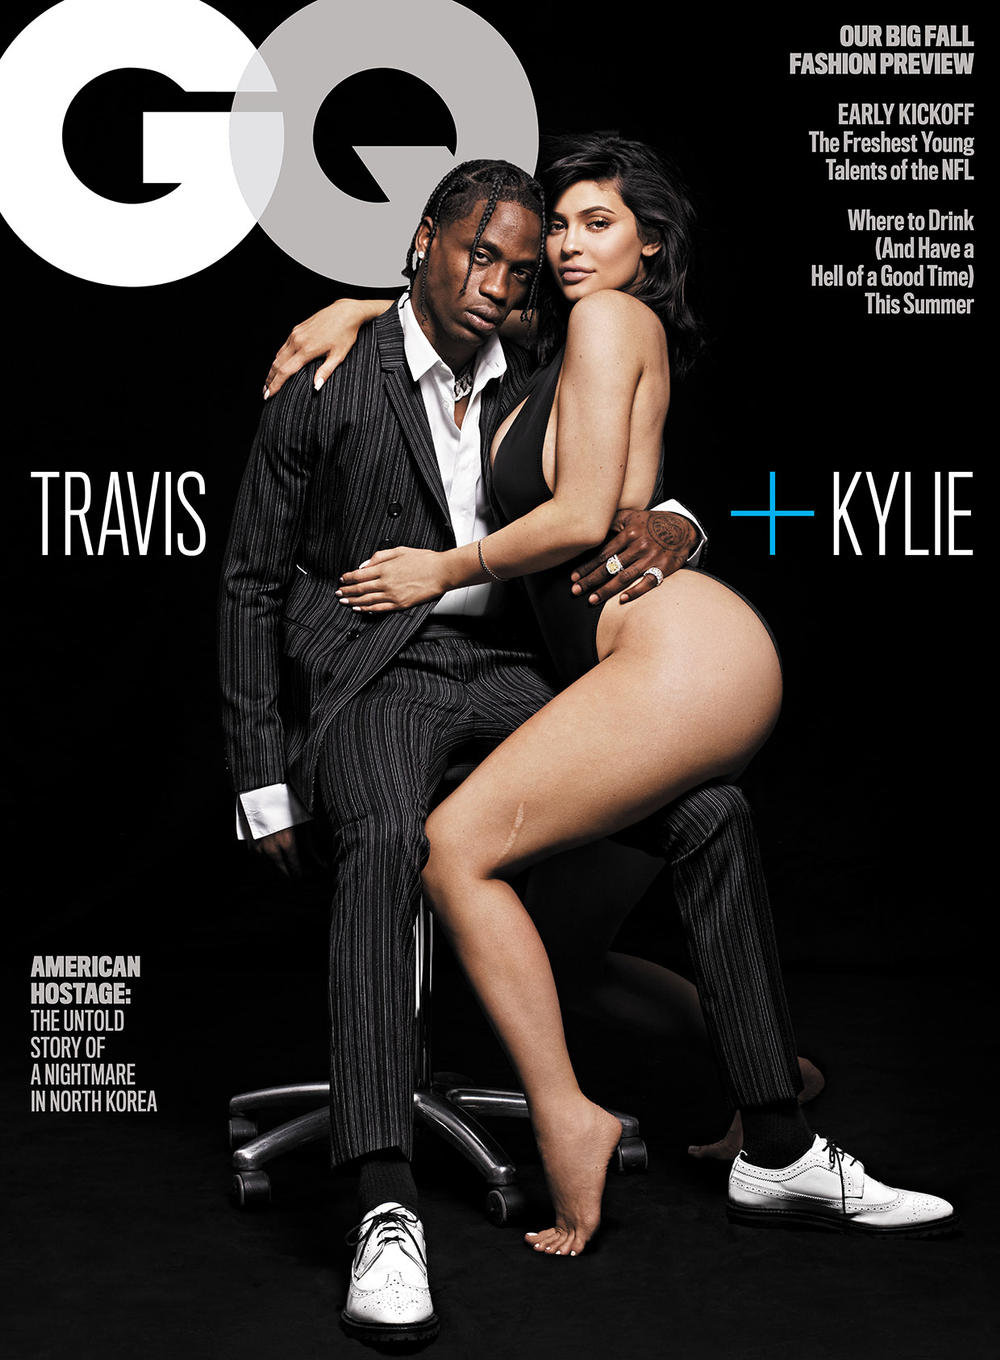 GQ Kylie Jenner Travis Scott 2018 August Issue Purchase Buy Cop Available Soon Music Fall Fashion Stormi Cover Story Kardashian